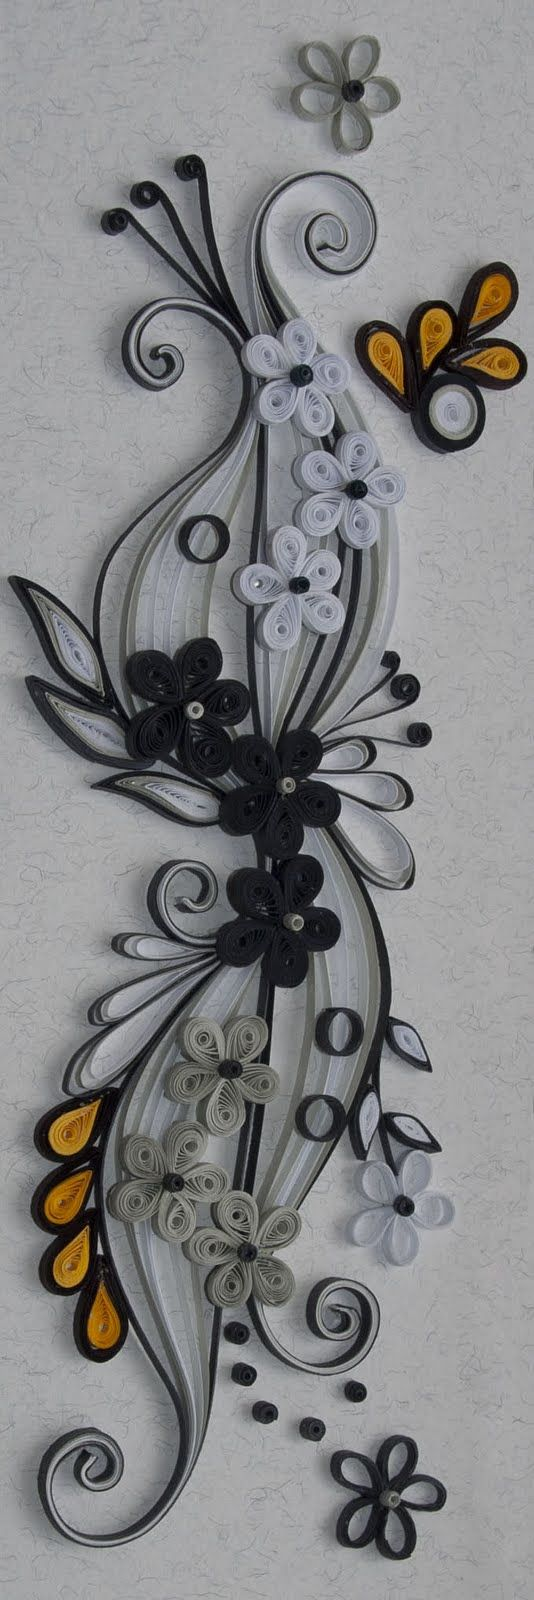 neli: Quilling black and white 2011/7